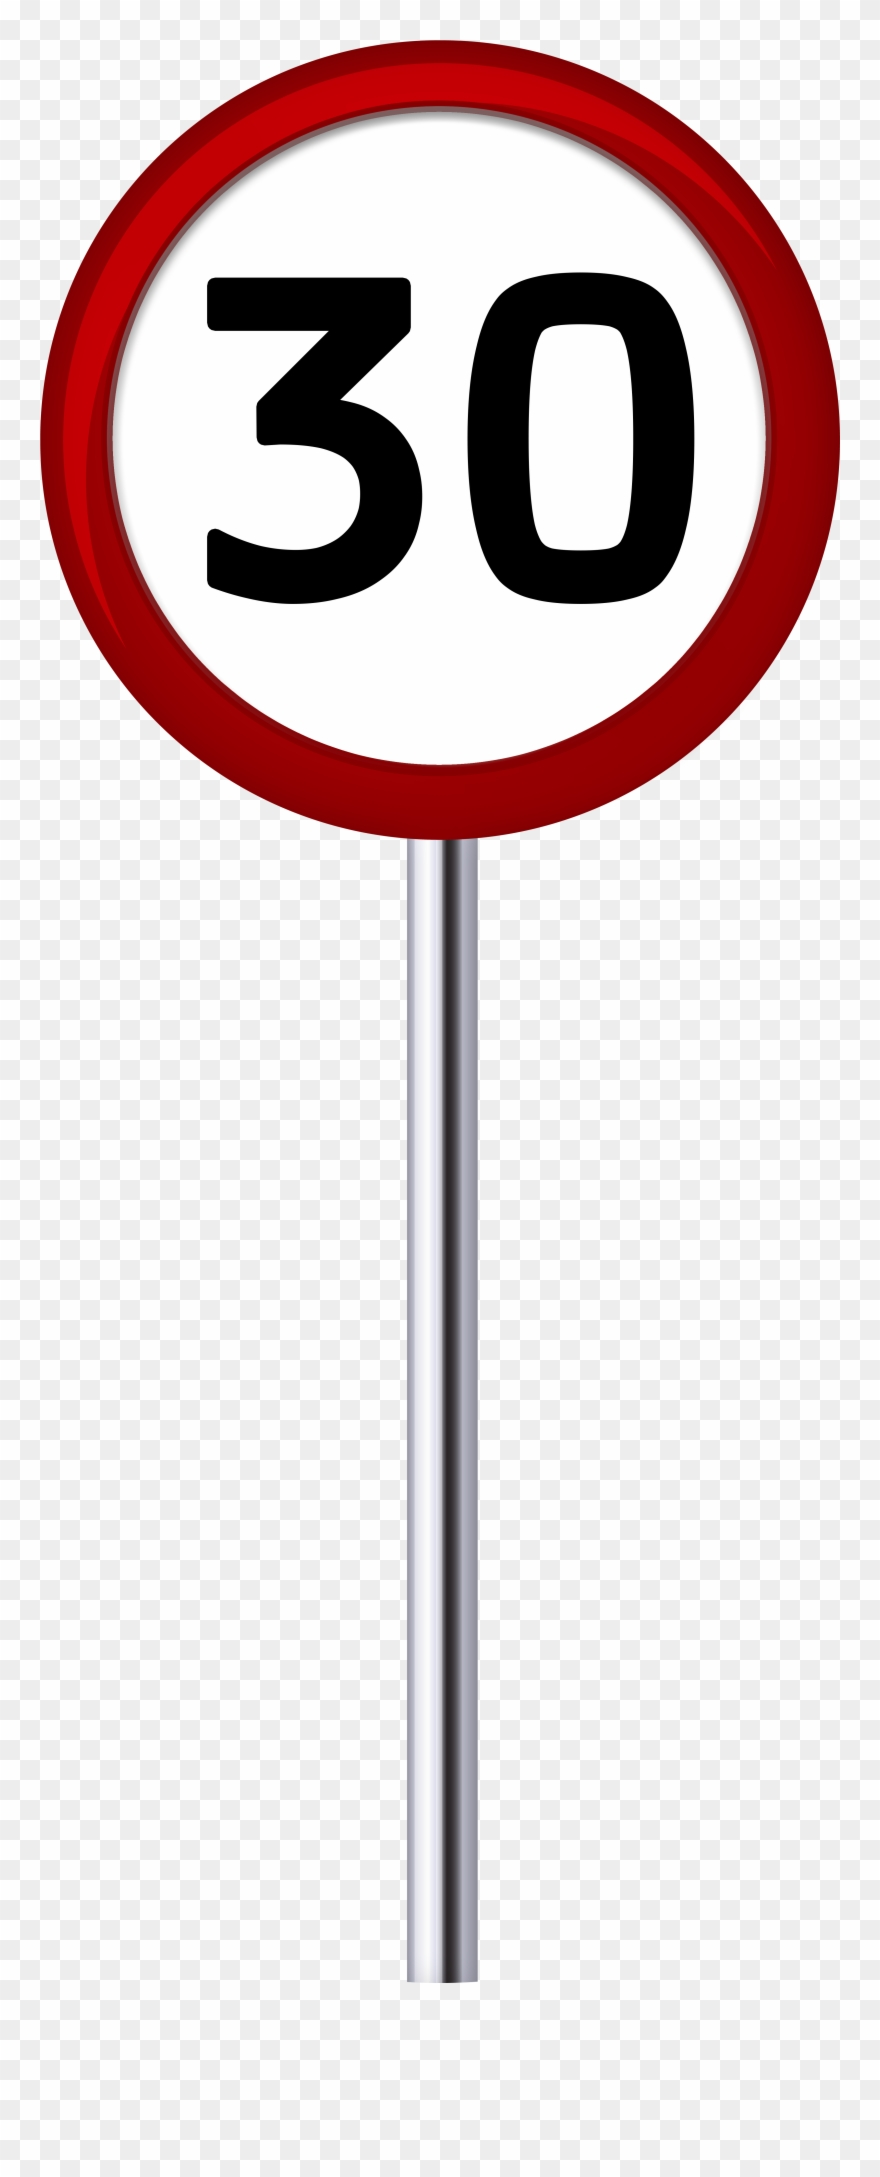 Traffic Sign Speed Limit 30 Png Clip Art.